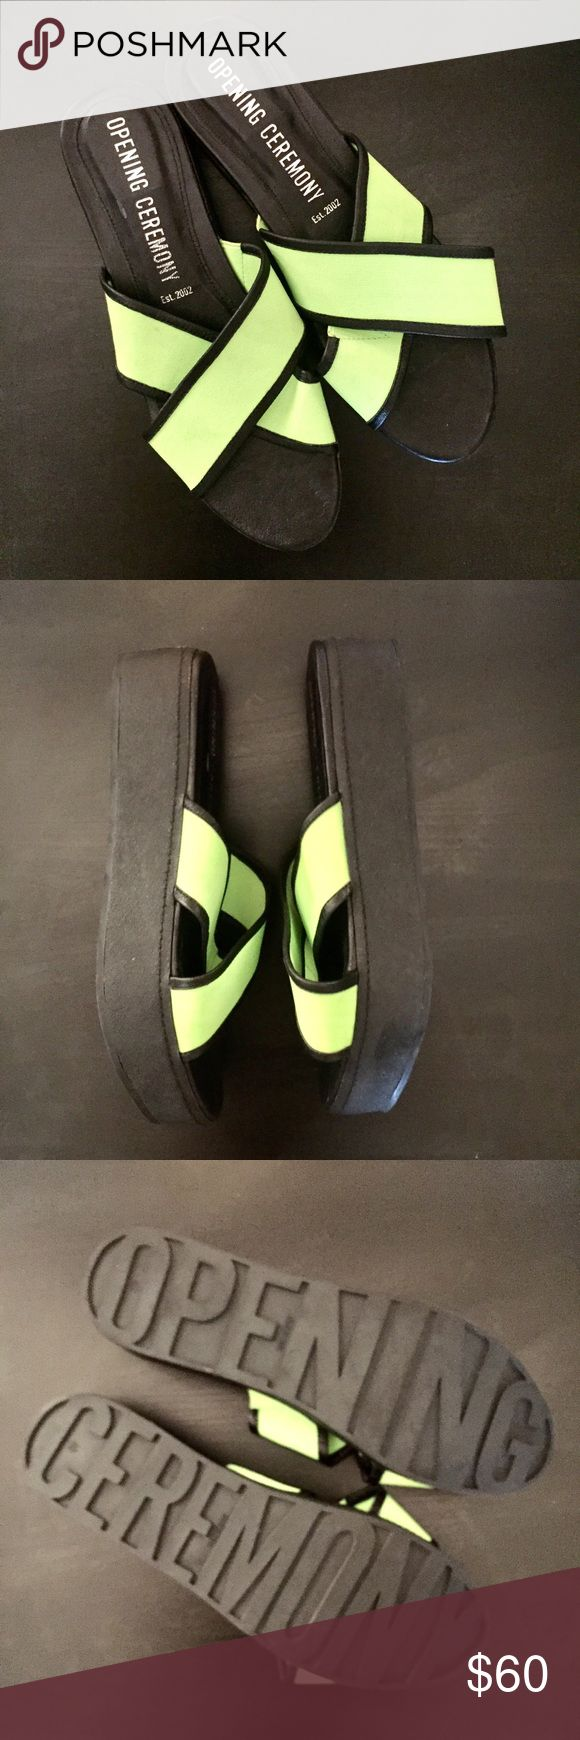 Opening Ceremony Slides Never been worn Opening Ceremony slides! Neon elastic straps that are super comfortable and can stretch to different foot widths! Marked as a EUO 40 but fits like a 9-9 1/2. Opening Ceremony Shoes Sandals